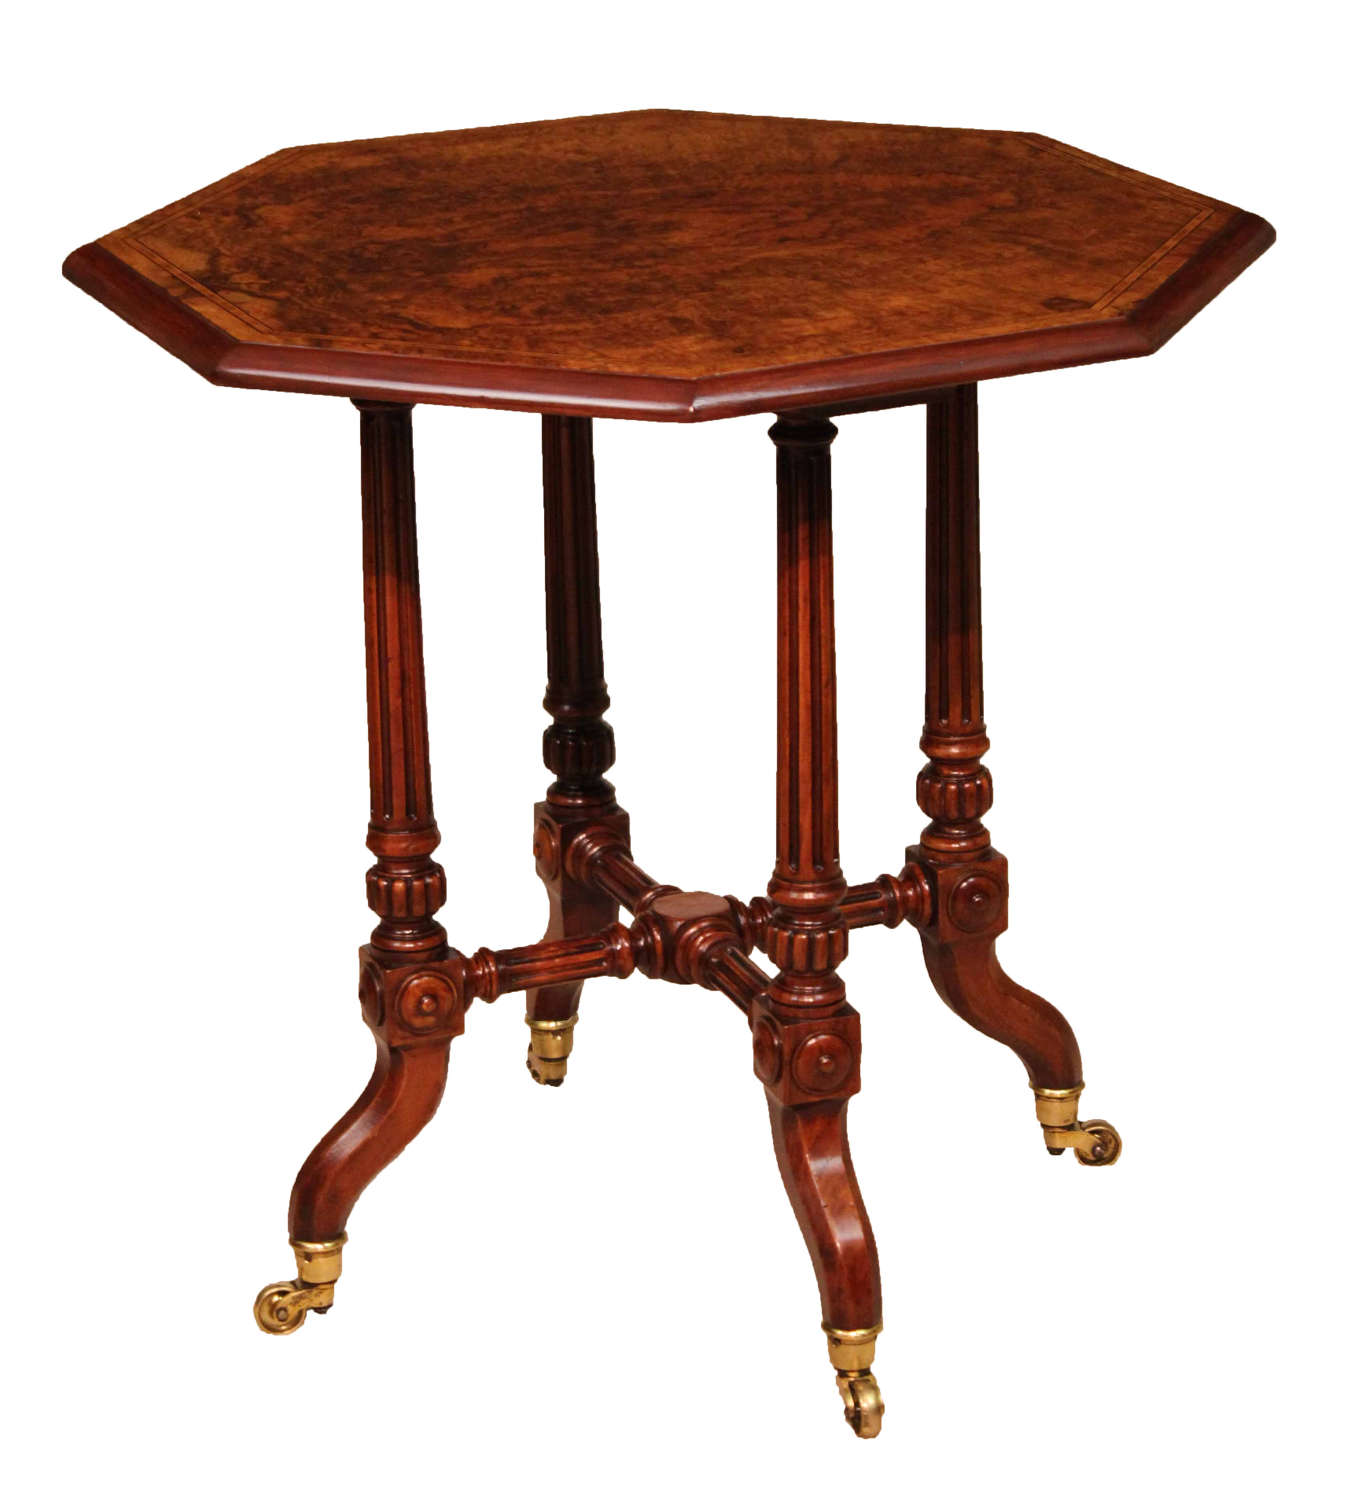 A Fine Quality Victorian Burr-Walnut Inlaid Octagonal Table